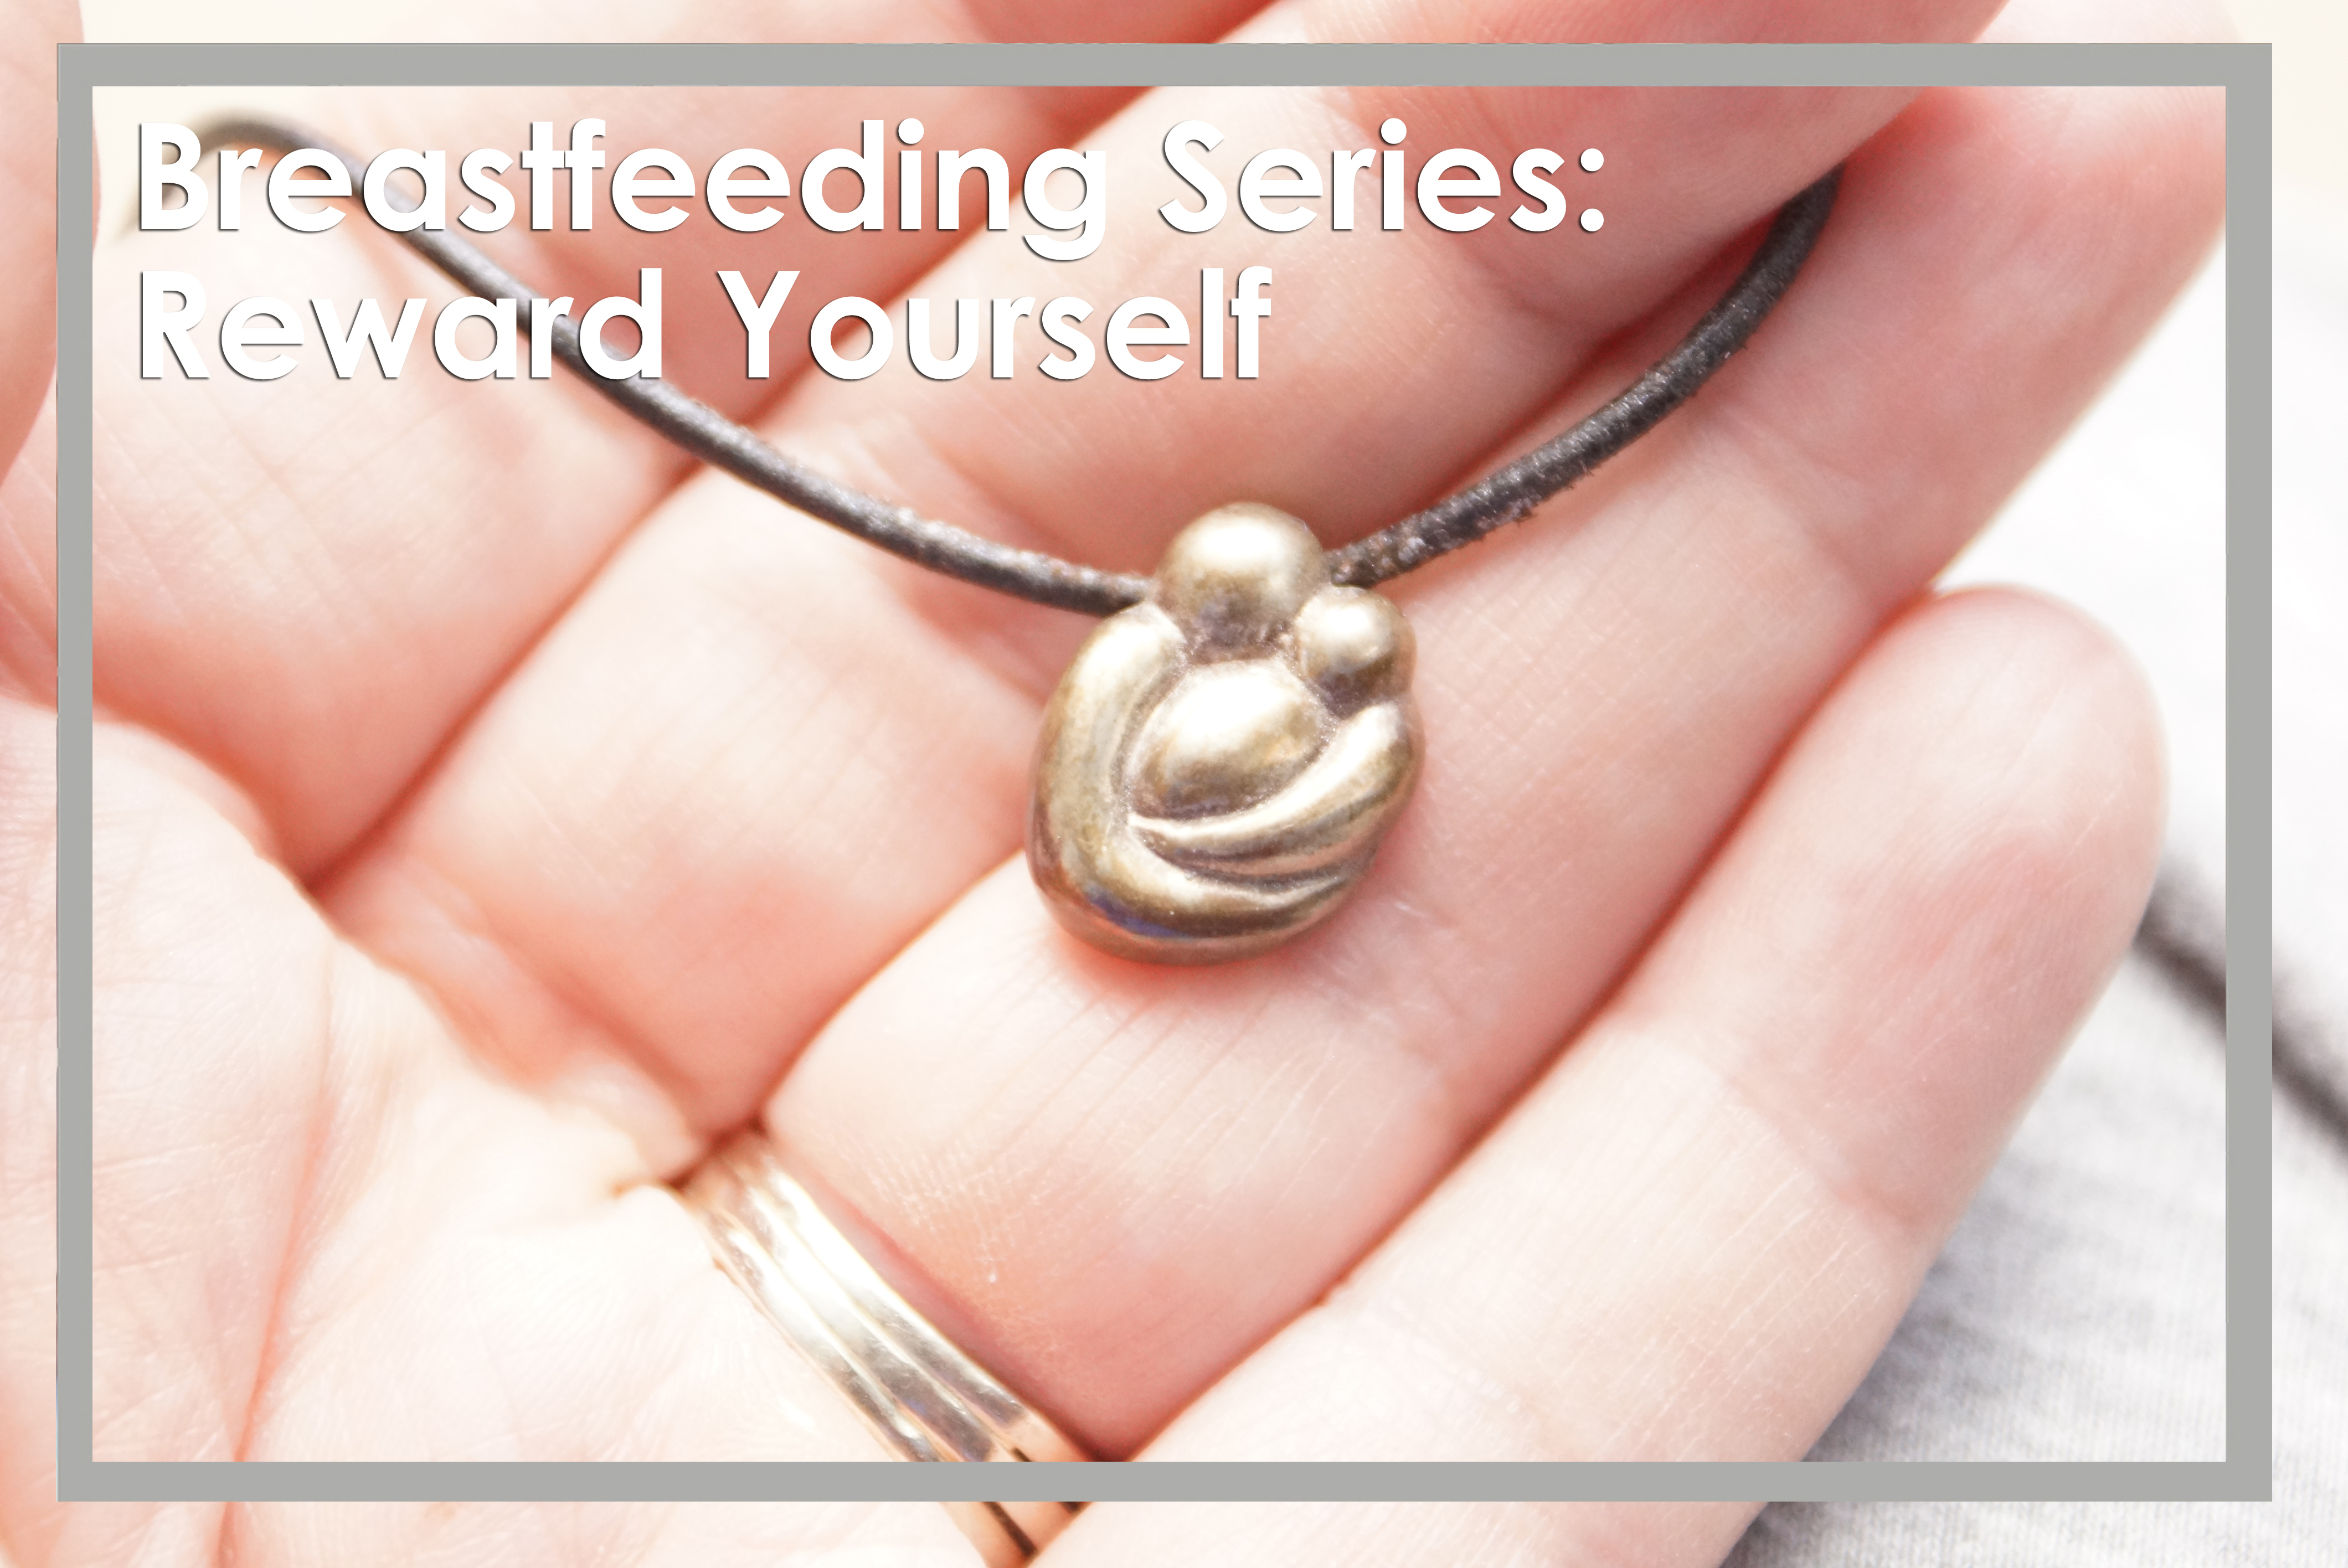 Breastfeeding Series: Final Thought – Reward Yourself for Breastfeeding